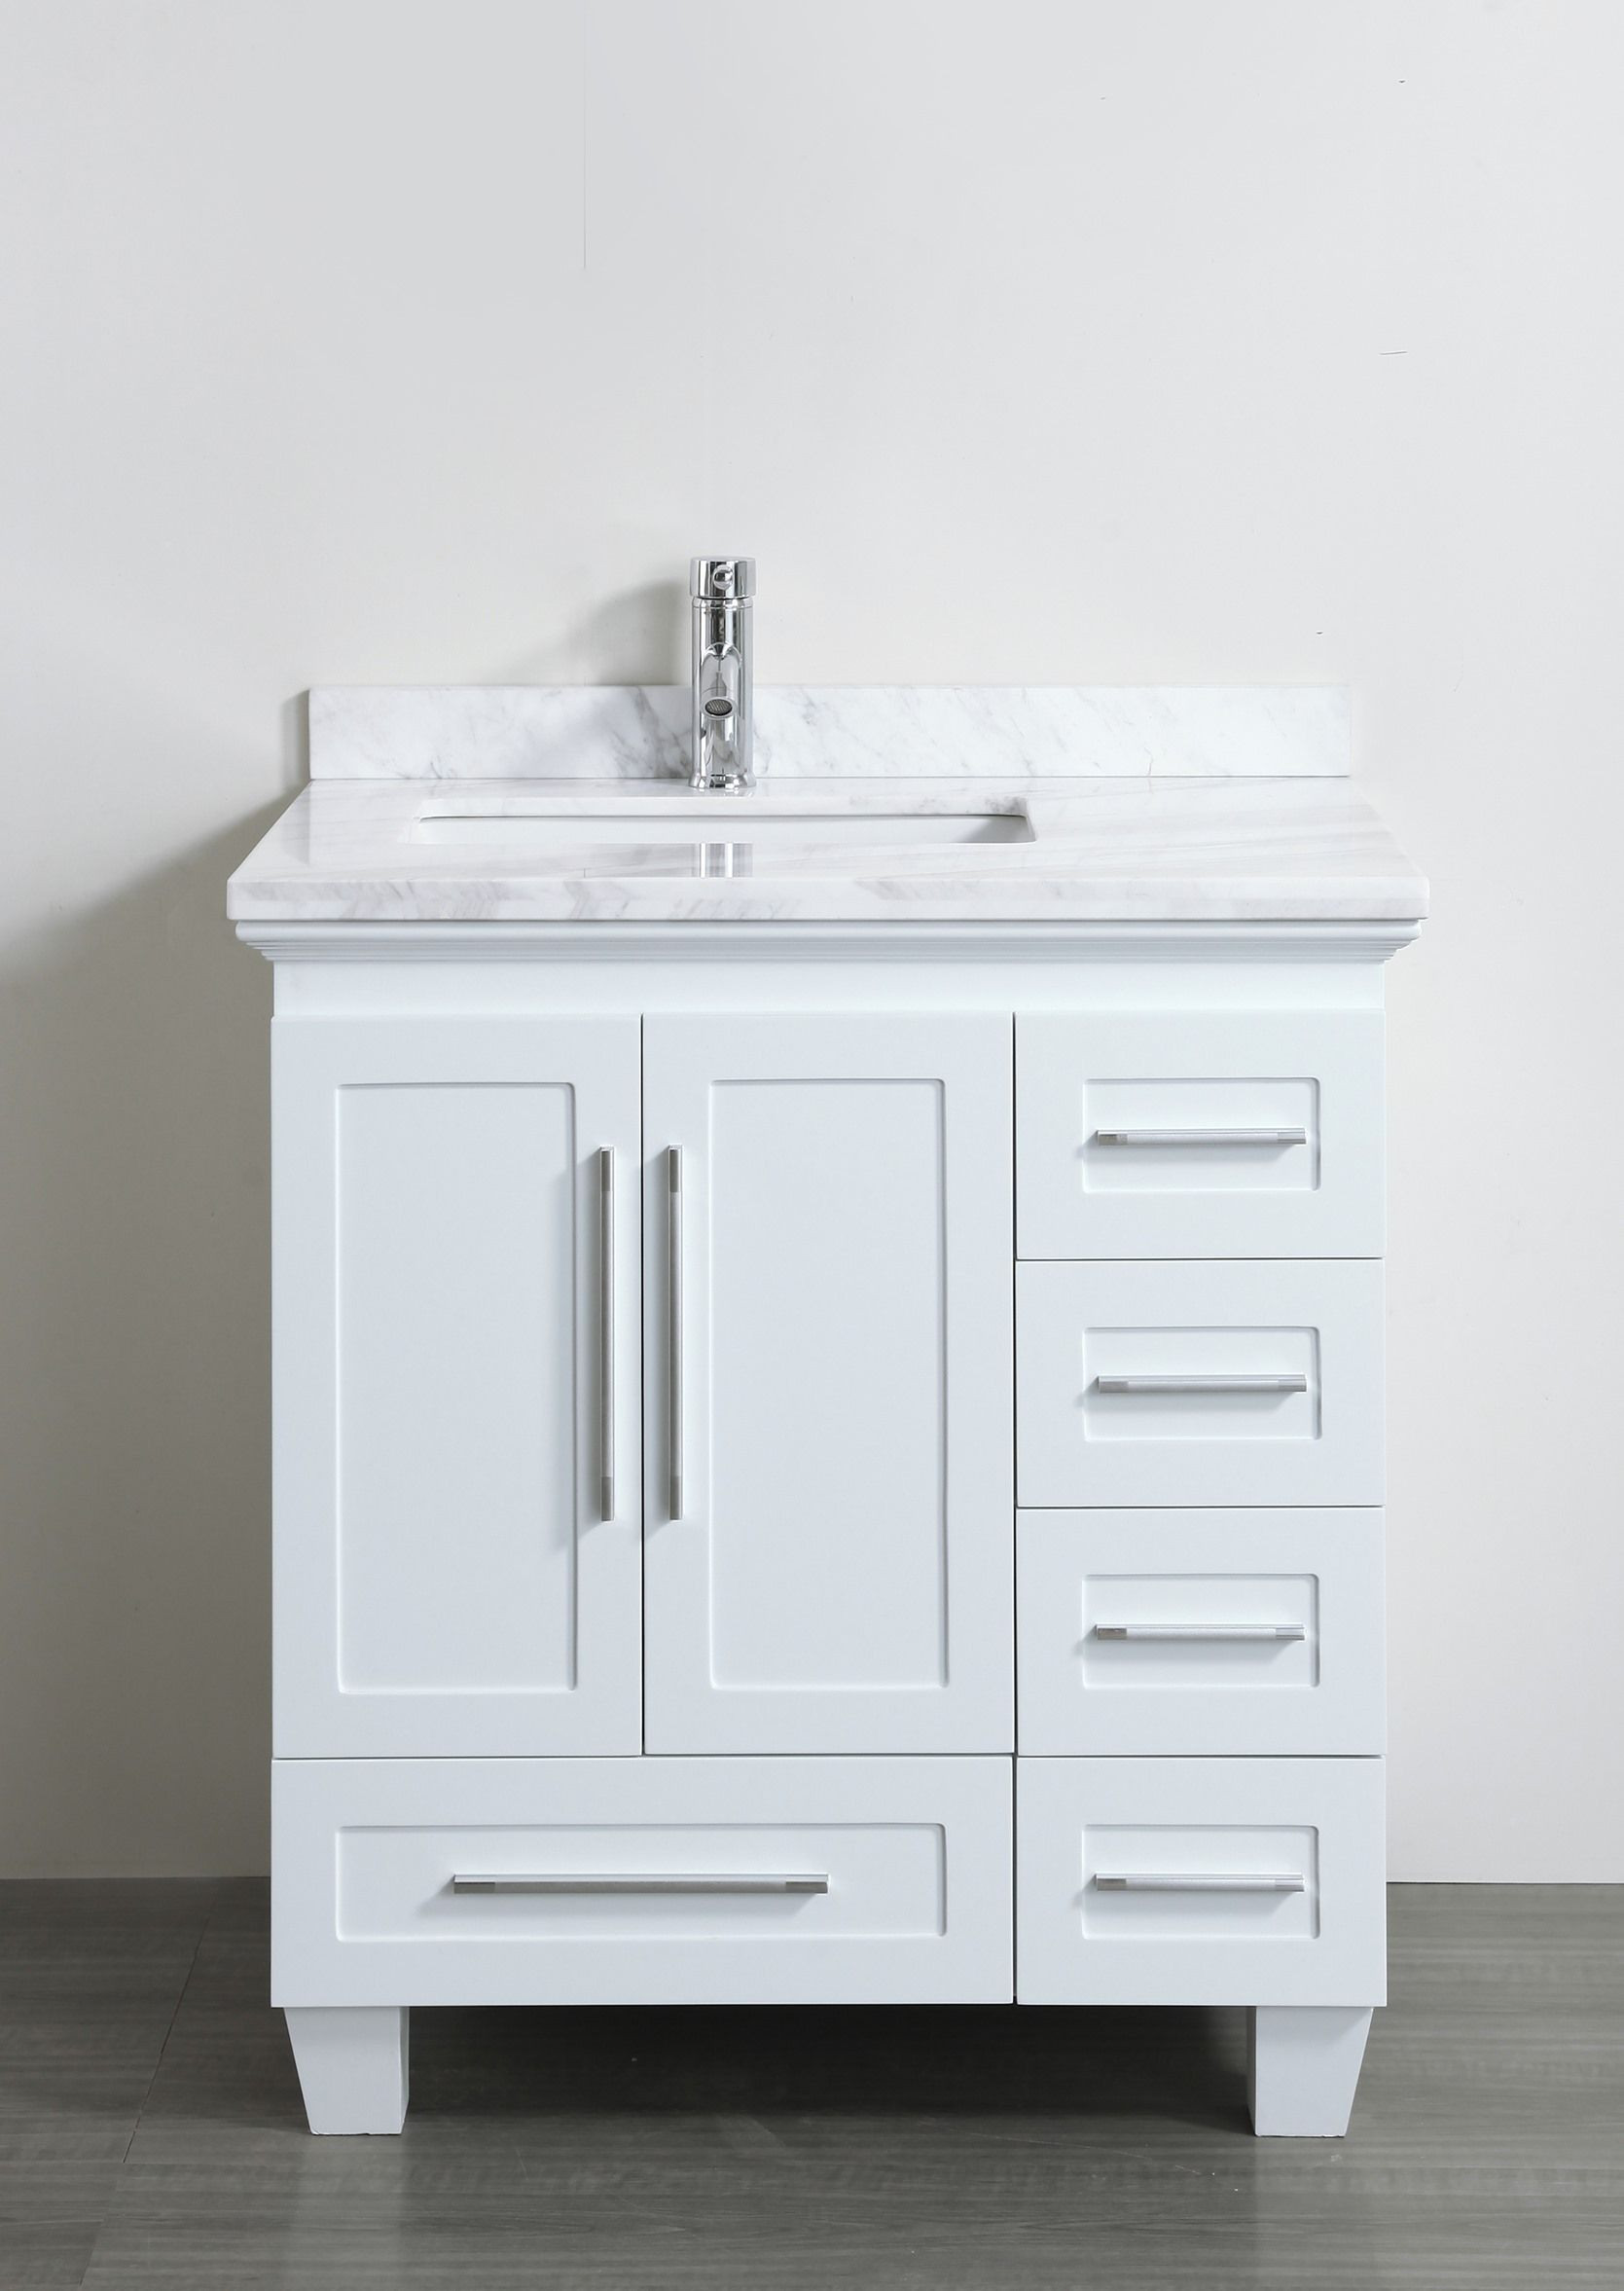 Best ideas about Bathroom Vanity 30 Inch . Save or Pin Accanto Contemporary 30 inch White Finish Bathroom Vanity Now.